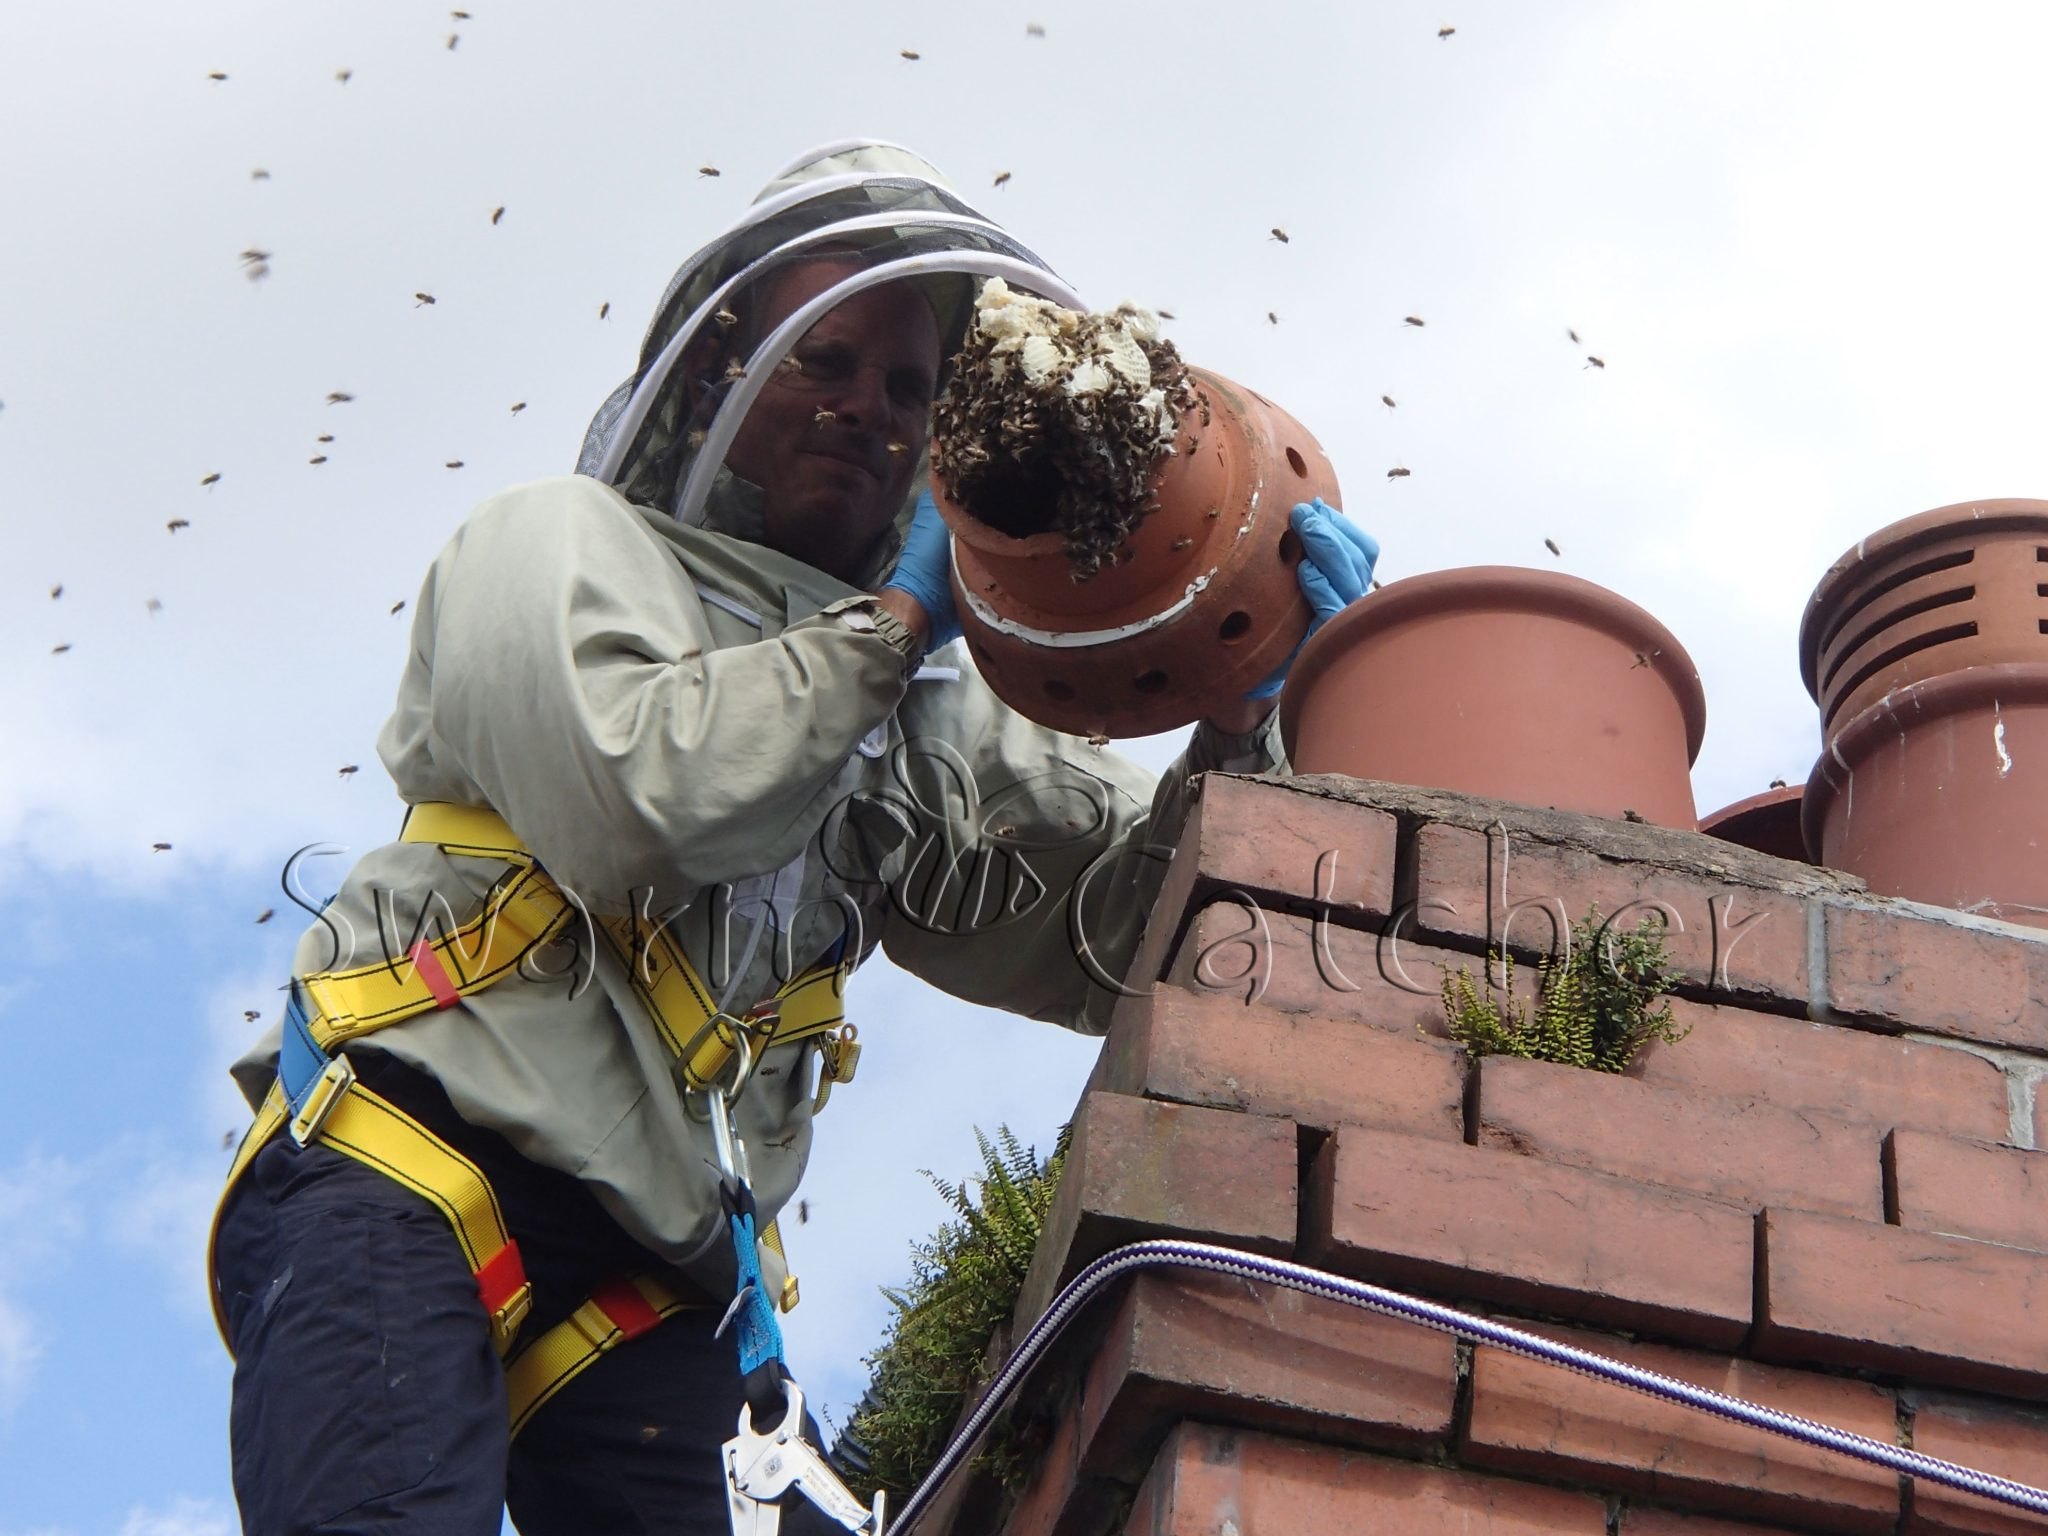 Honey bees Live honey bee colony removal of honey bees in chimney